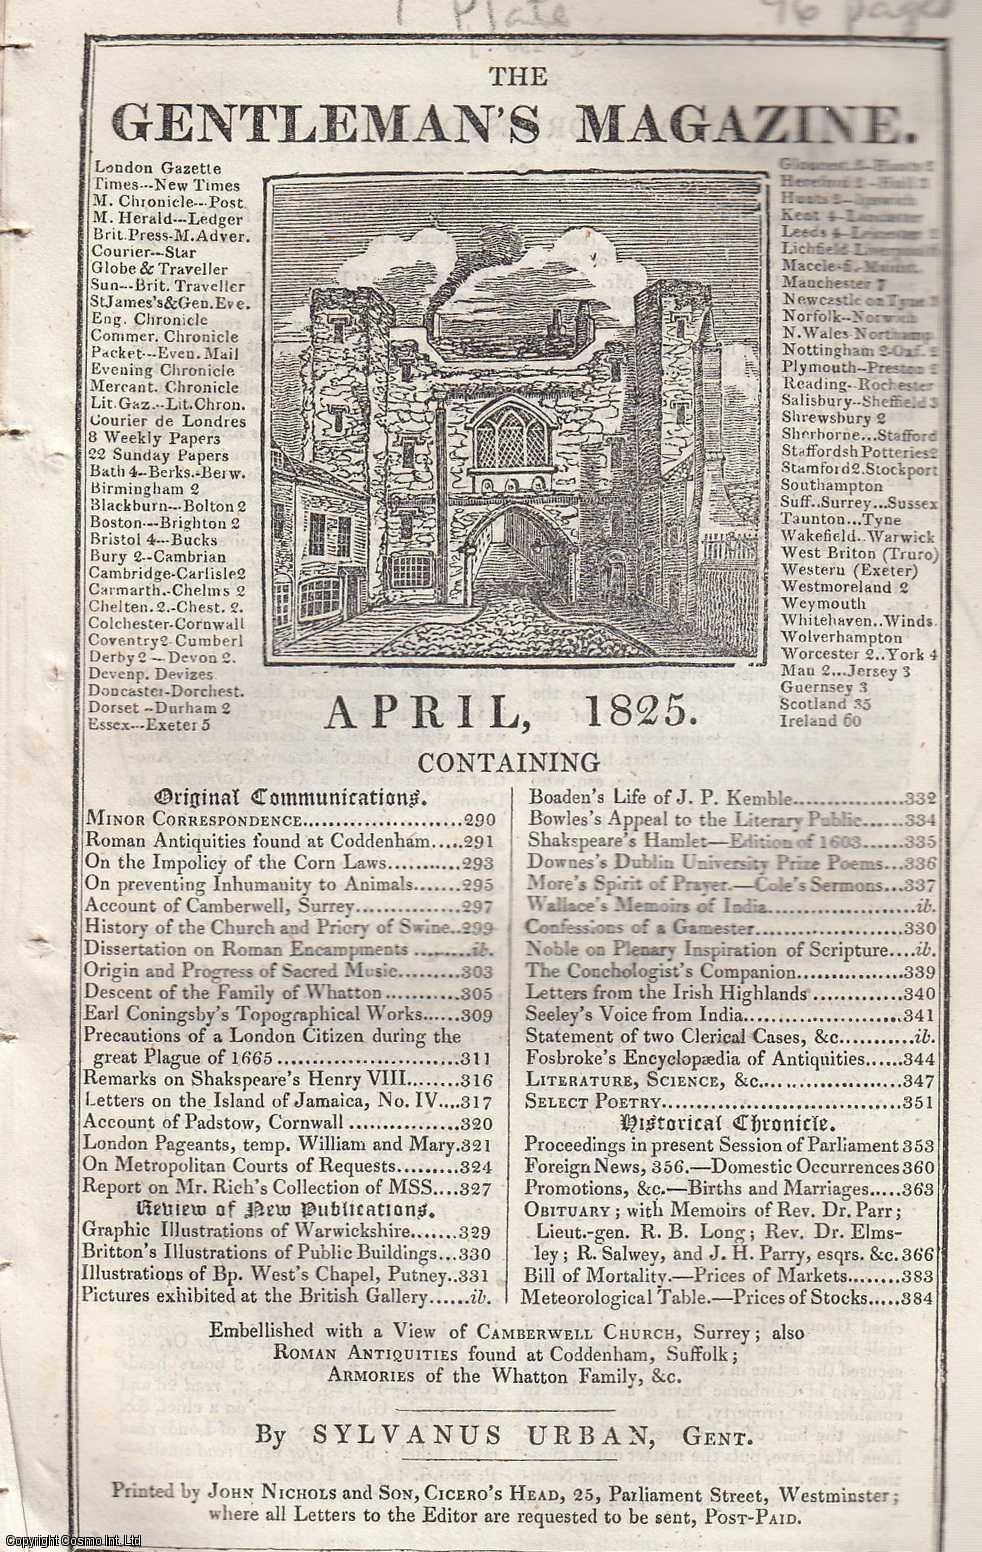 The Gentleman's Magazine for April 1825.  FEATURING One Plate; St. Giles, Camberwell, Surrey., Urban, Sylvanus.